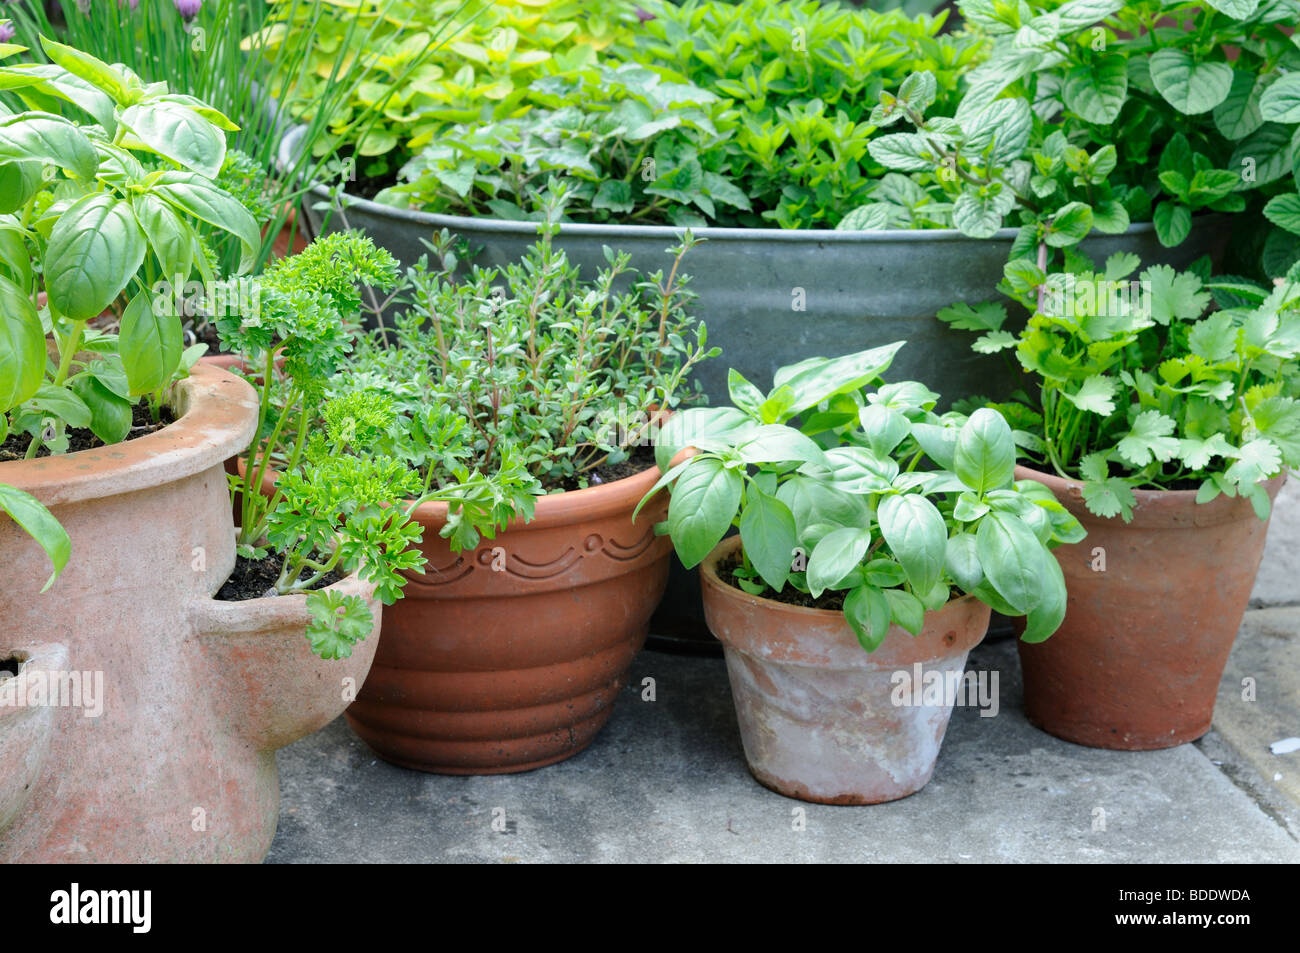 pot grown herbs including mint chives basil parsley and thyme stock photo 25506246 alamy. Black Bedroom Furniture Sets. Home Design Ideas